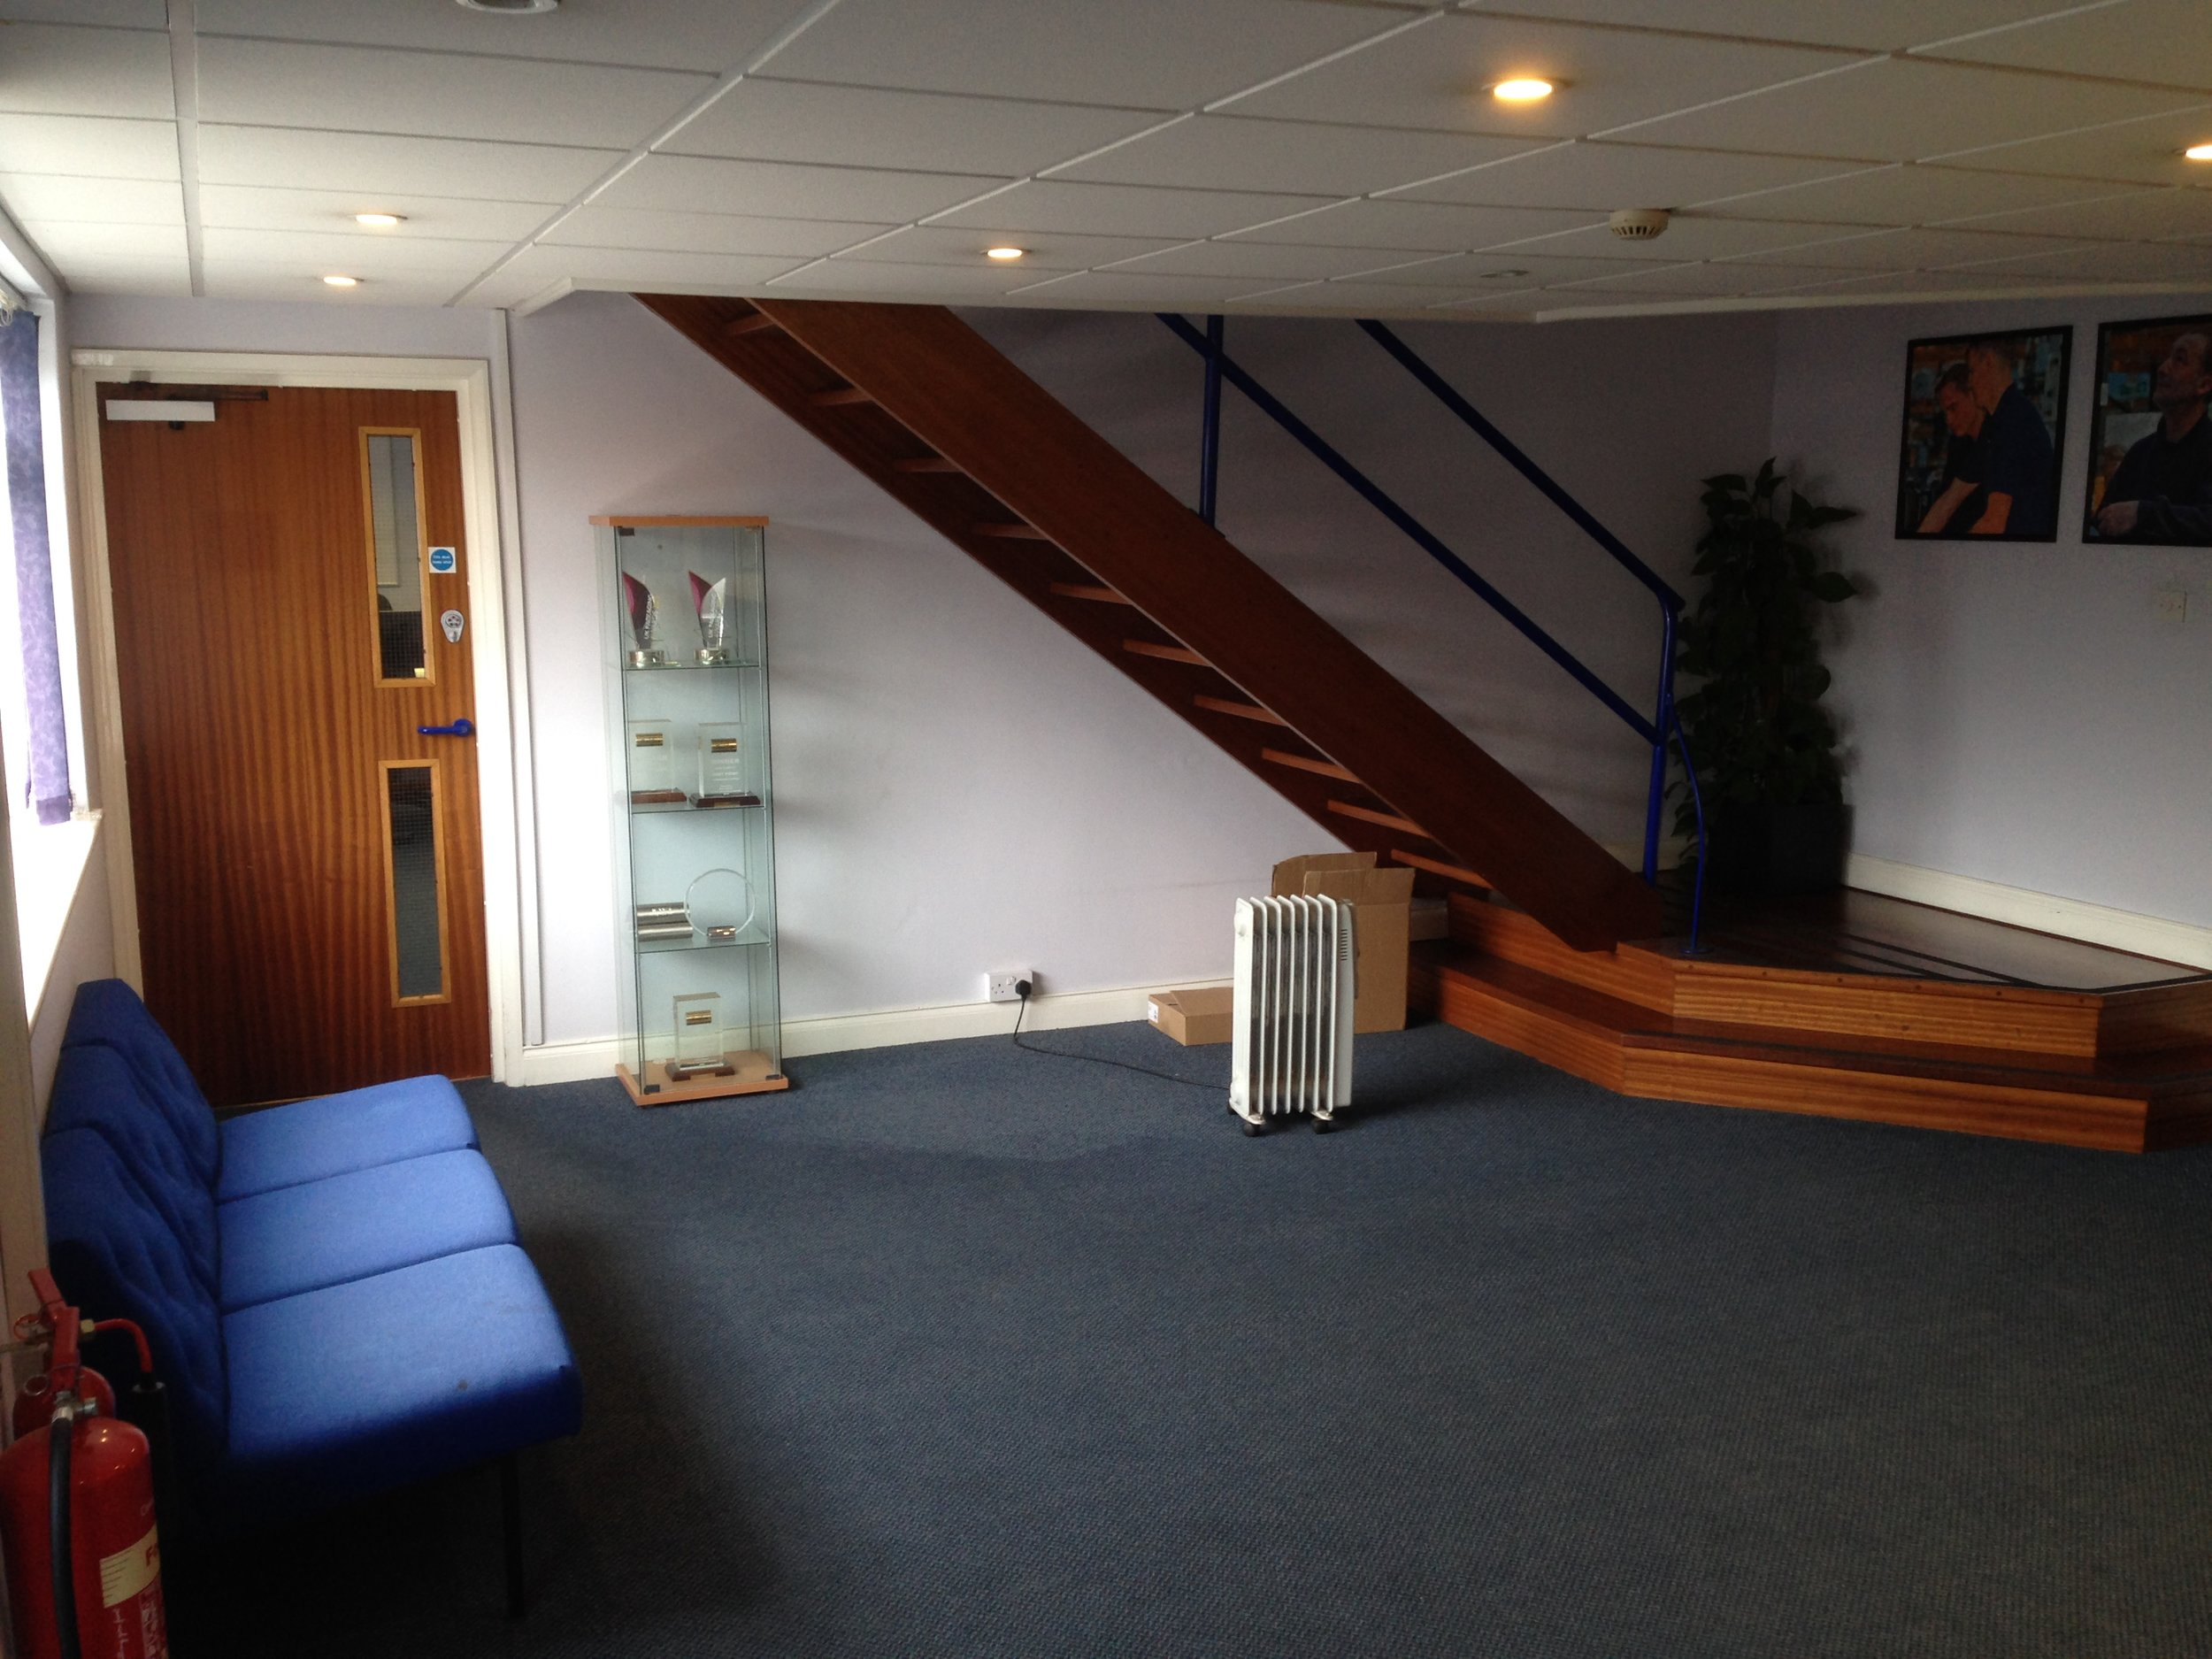 Office remodelling - design and refit - Littlehampton manufacturing sector-18